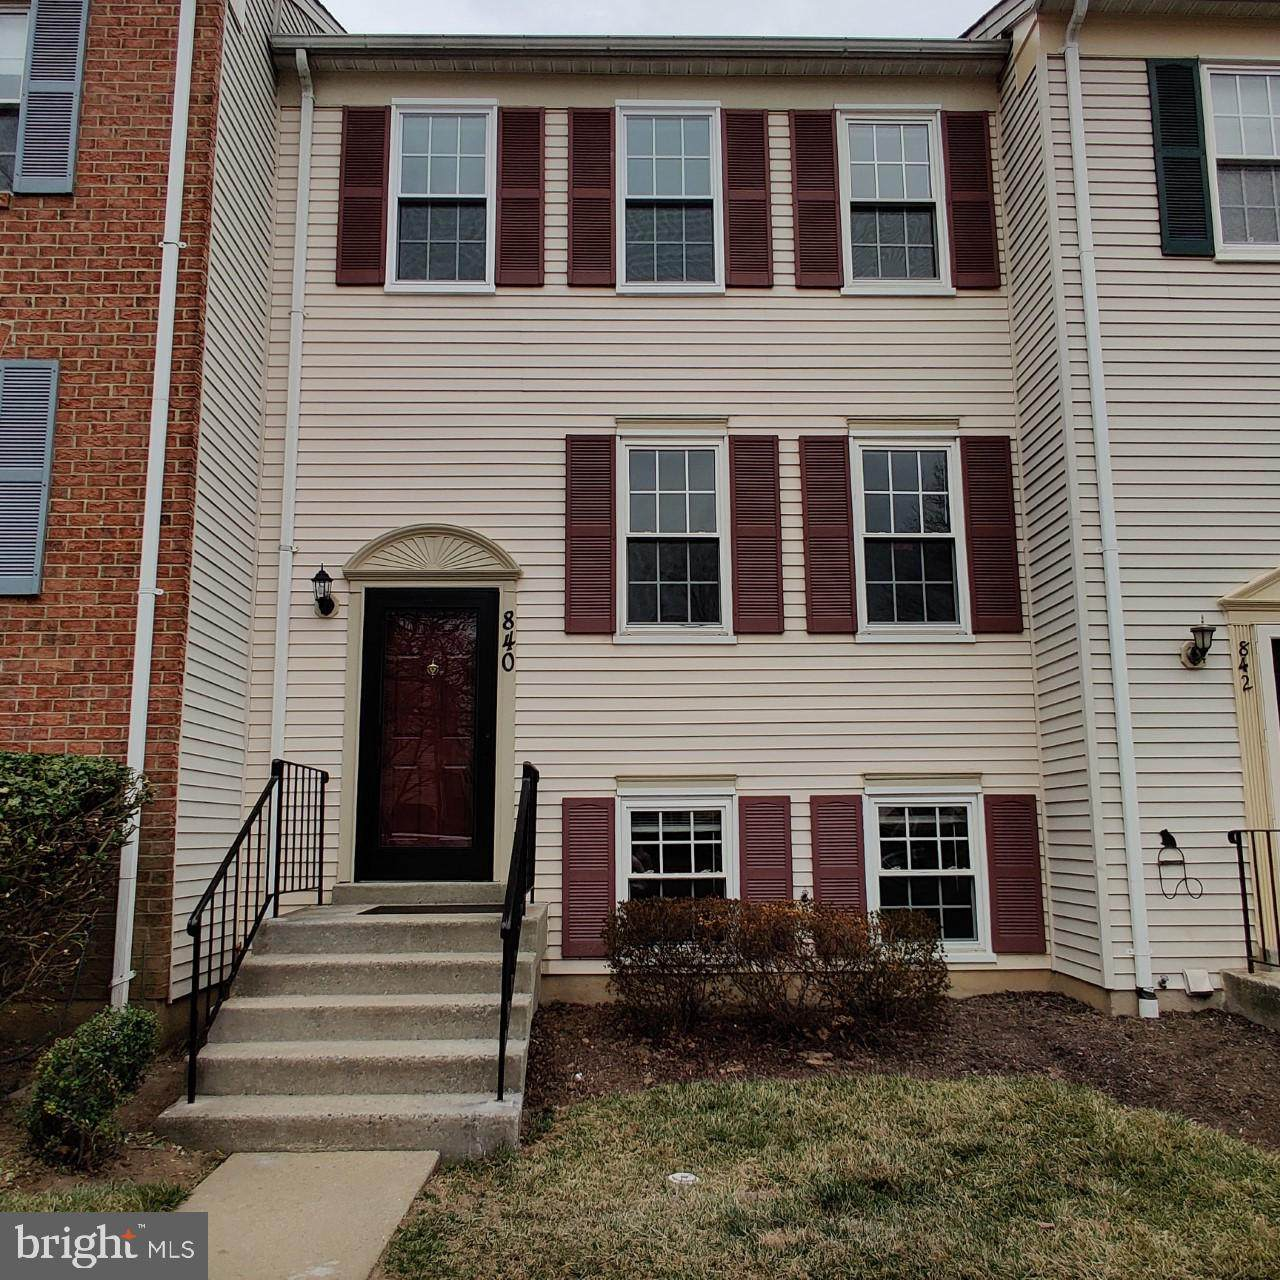 840 Ivy League Lane - Photo 1